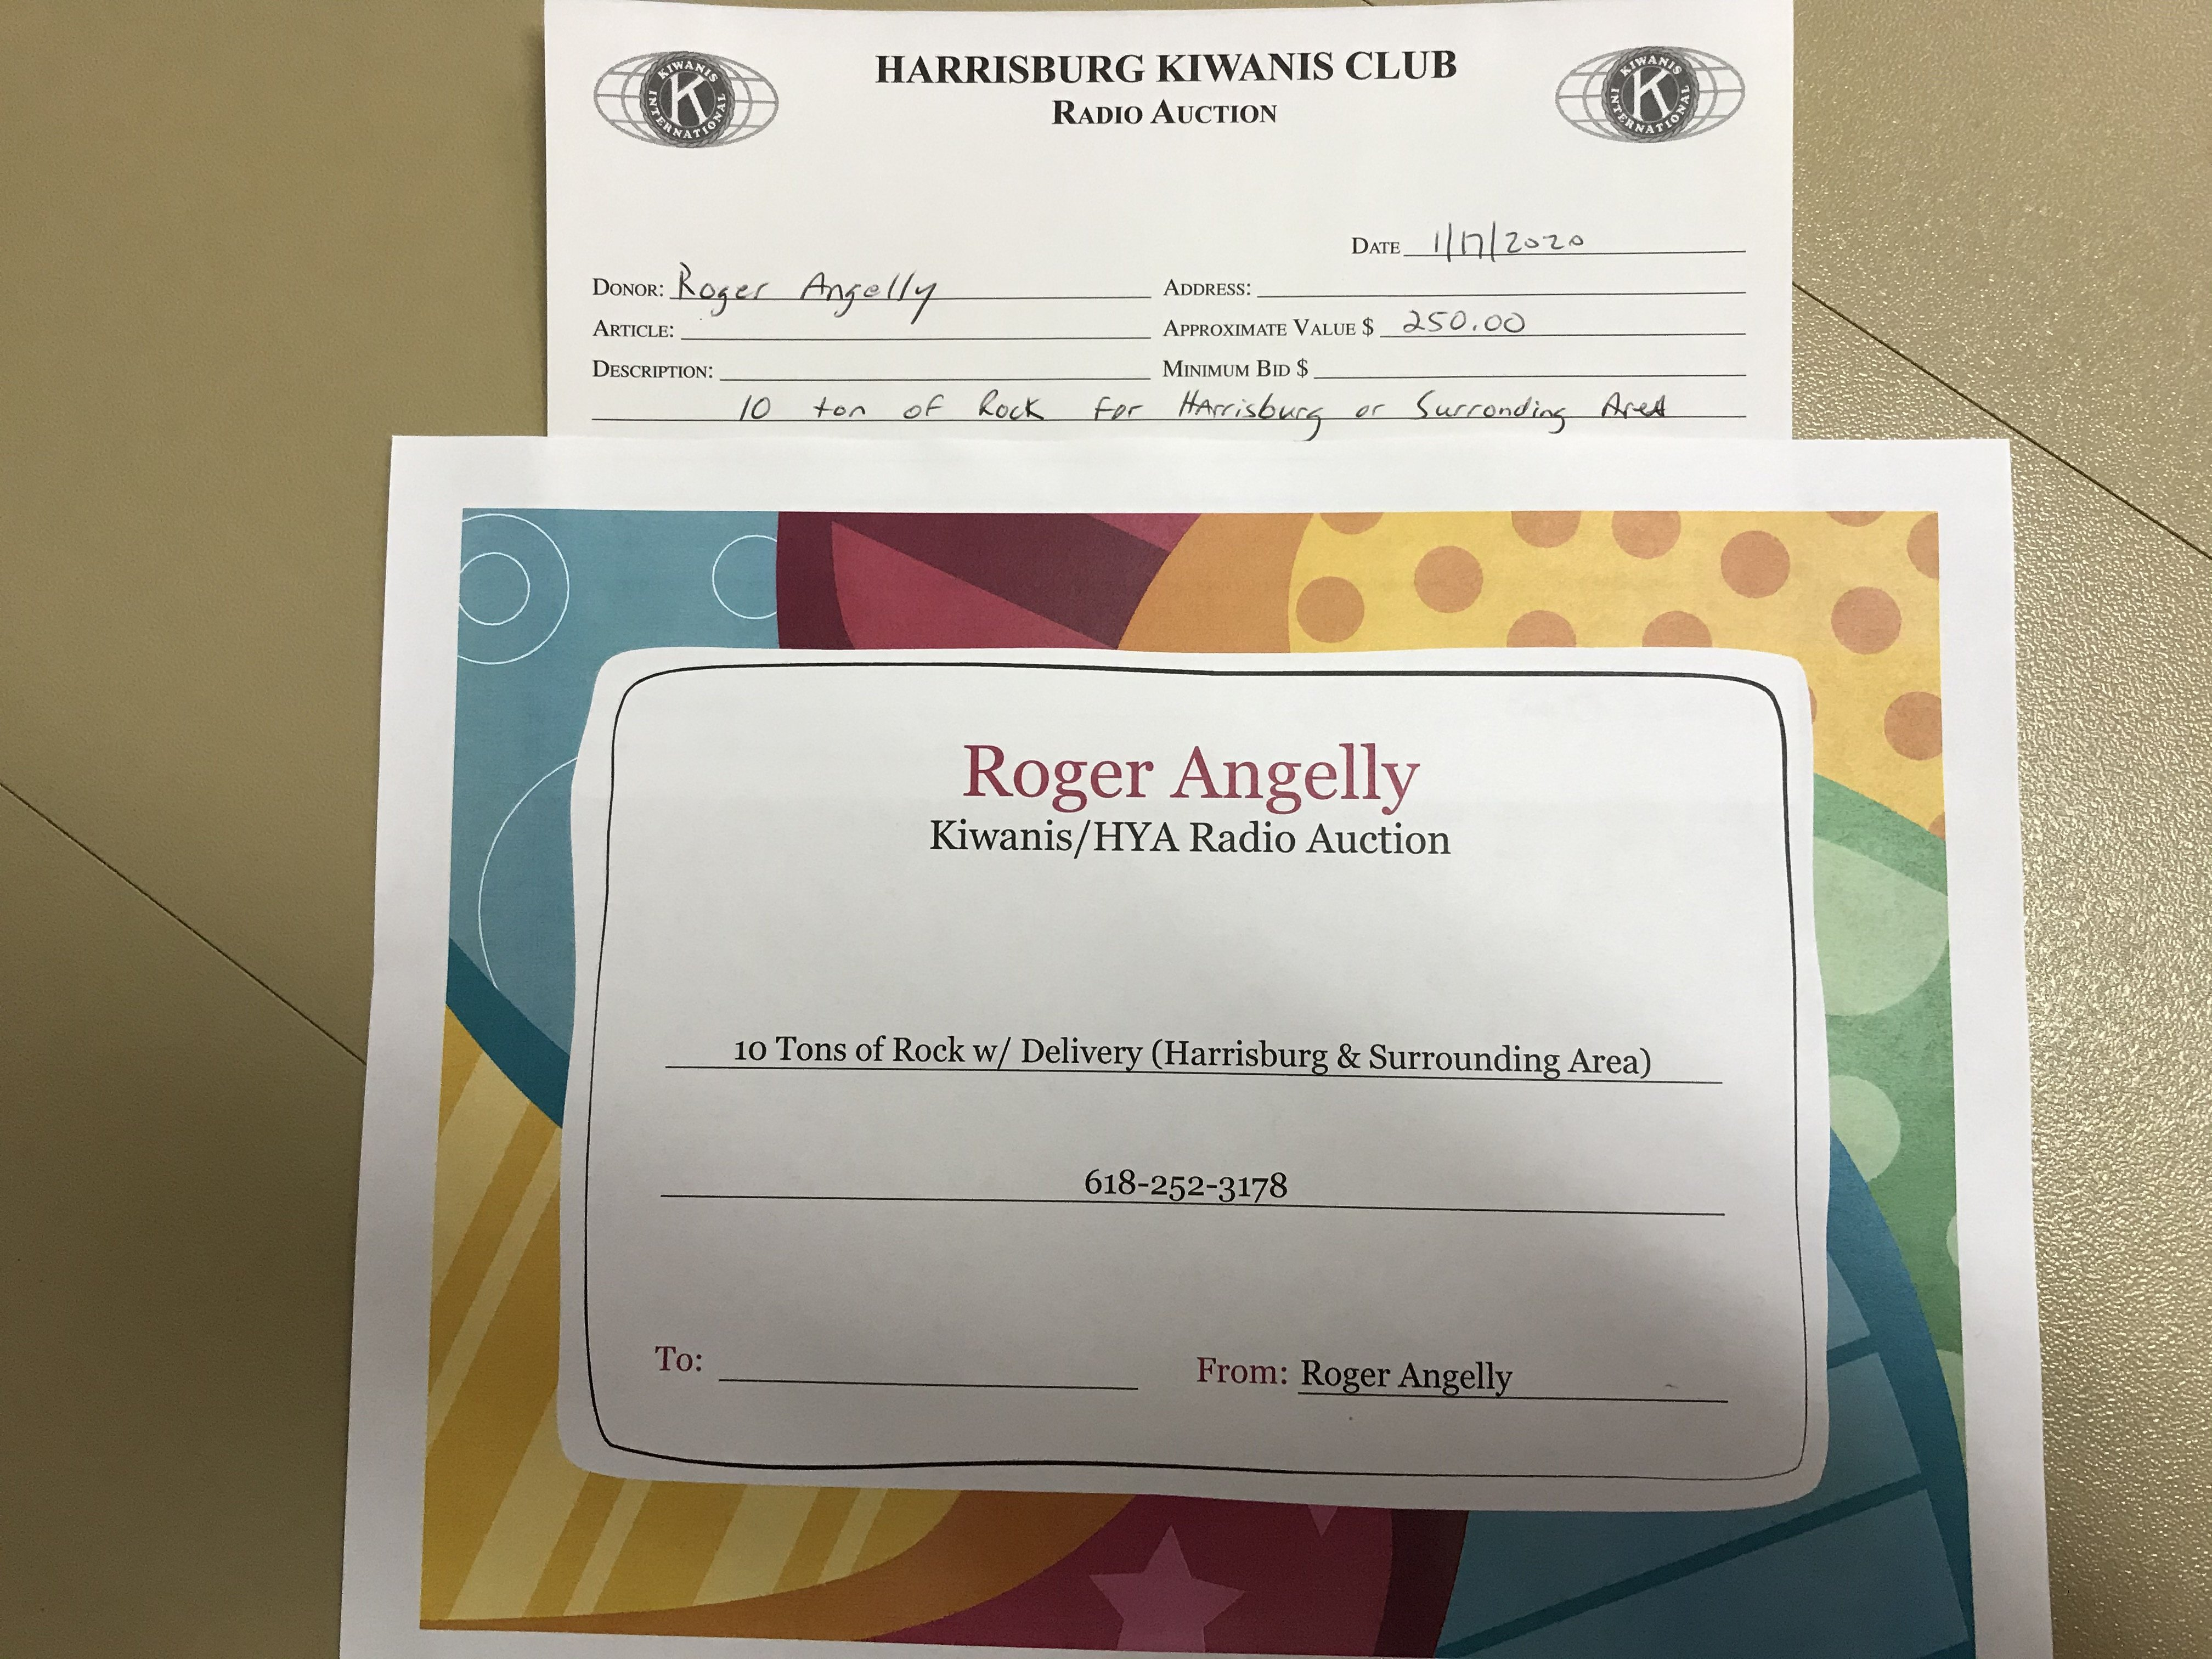 Item 512 - Roger Angelly 10 tons rock with delivery to Harrisburg & surrounding area